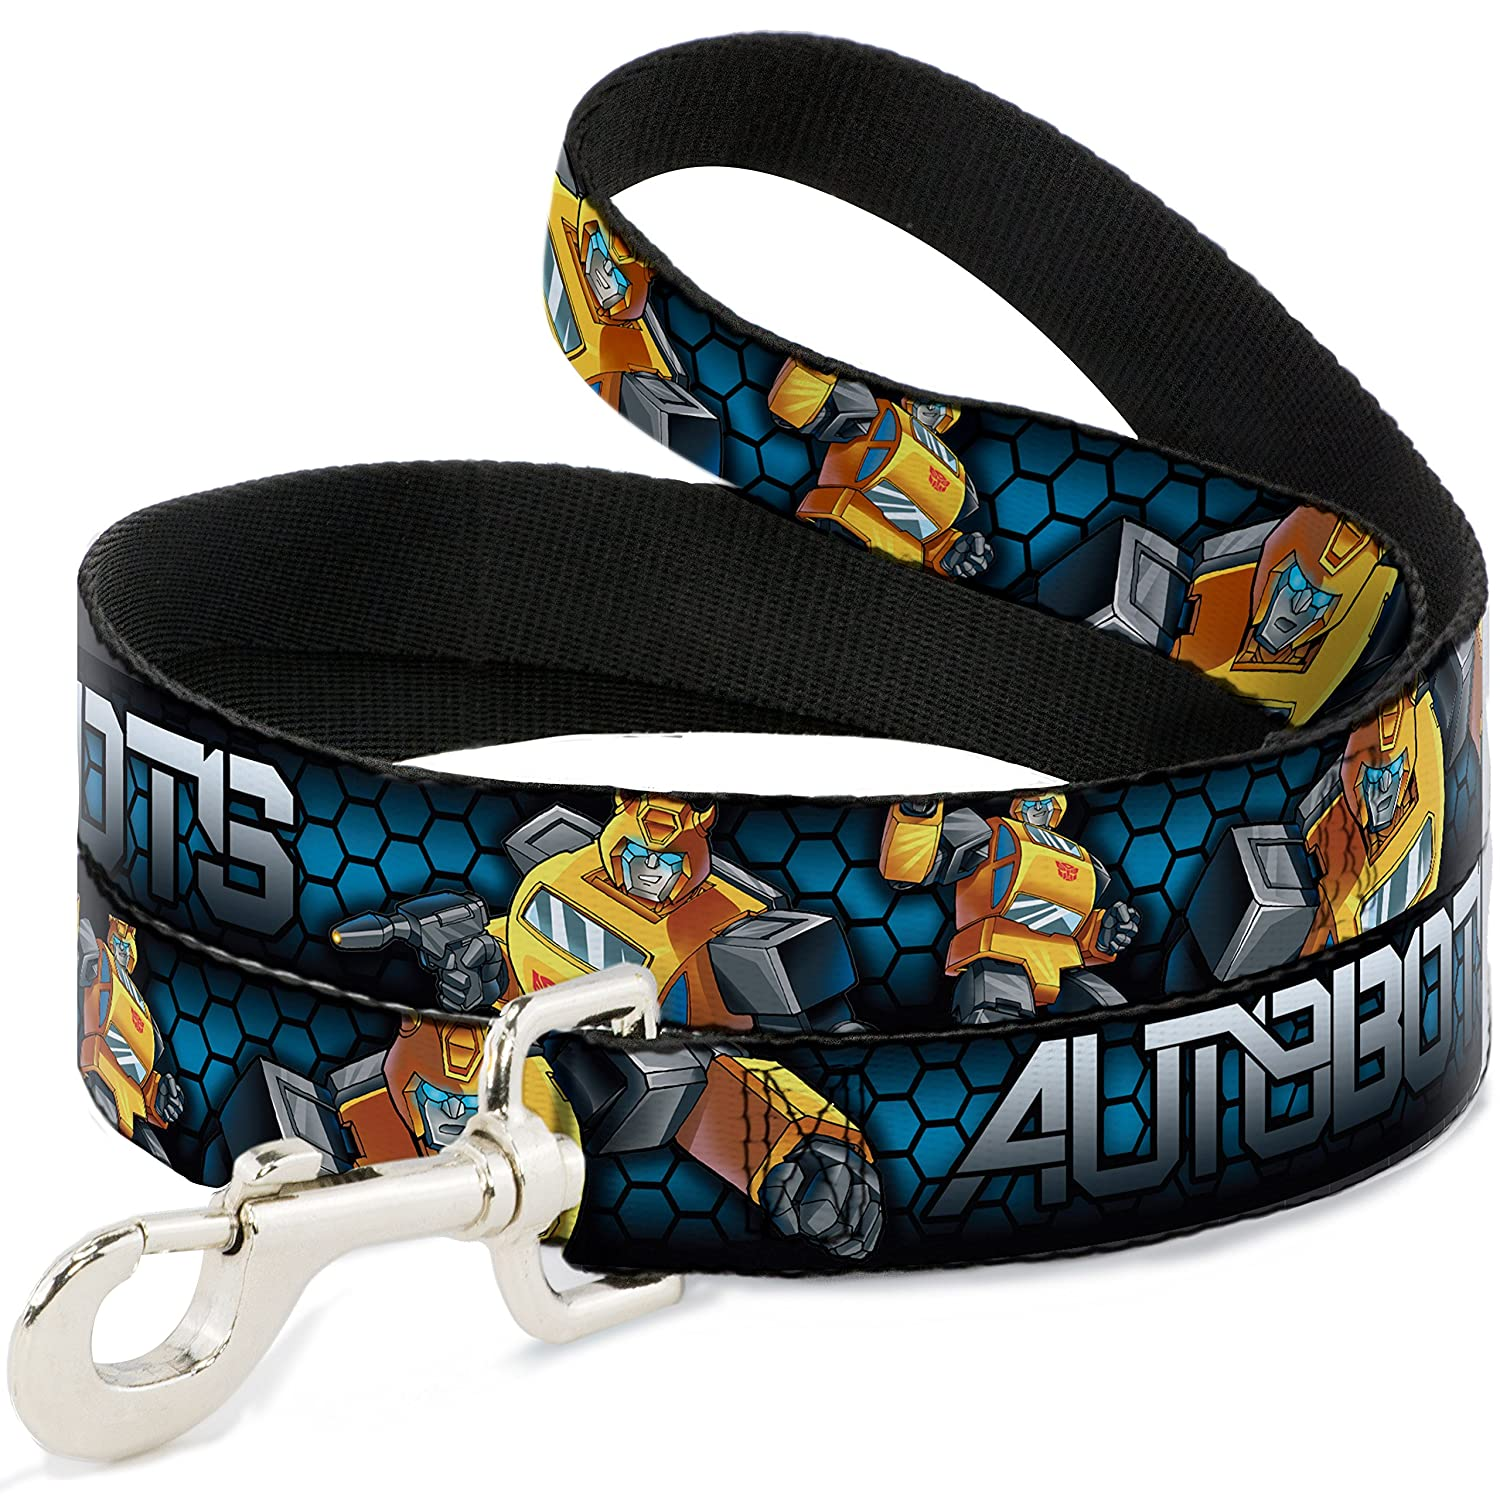 Buckle-Down Pet Leash Autobots-Bumblebee Poses Honeycomb bluee-Fade Black White 6 Feet Long 1  Wide